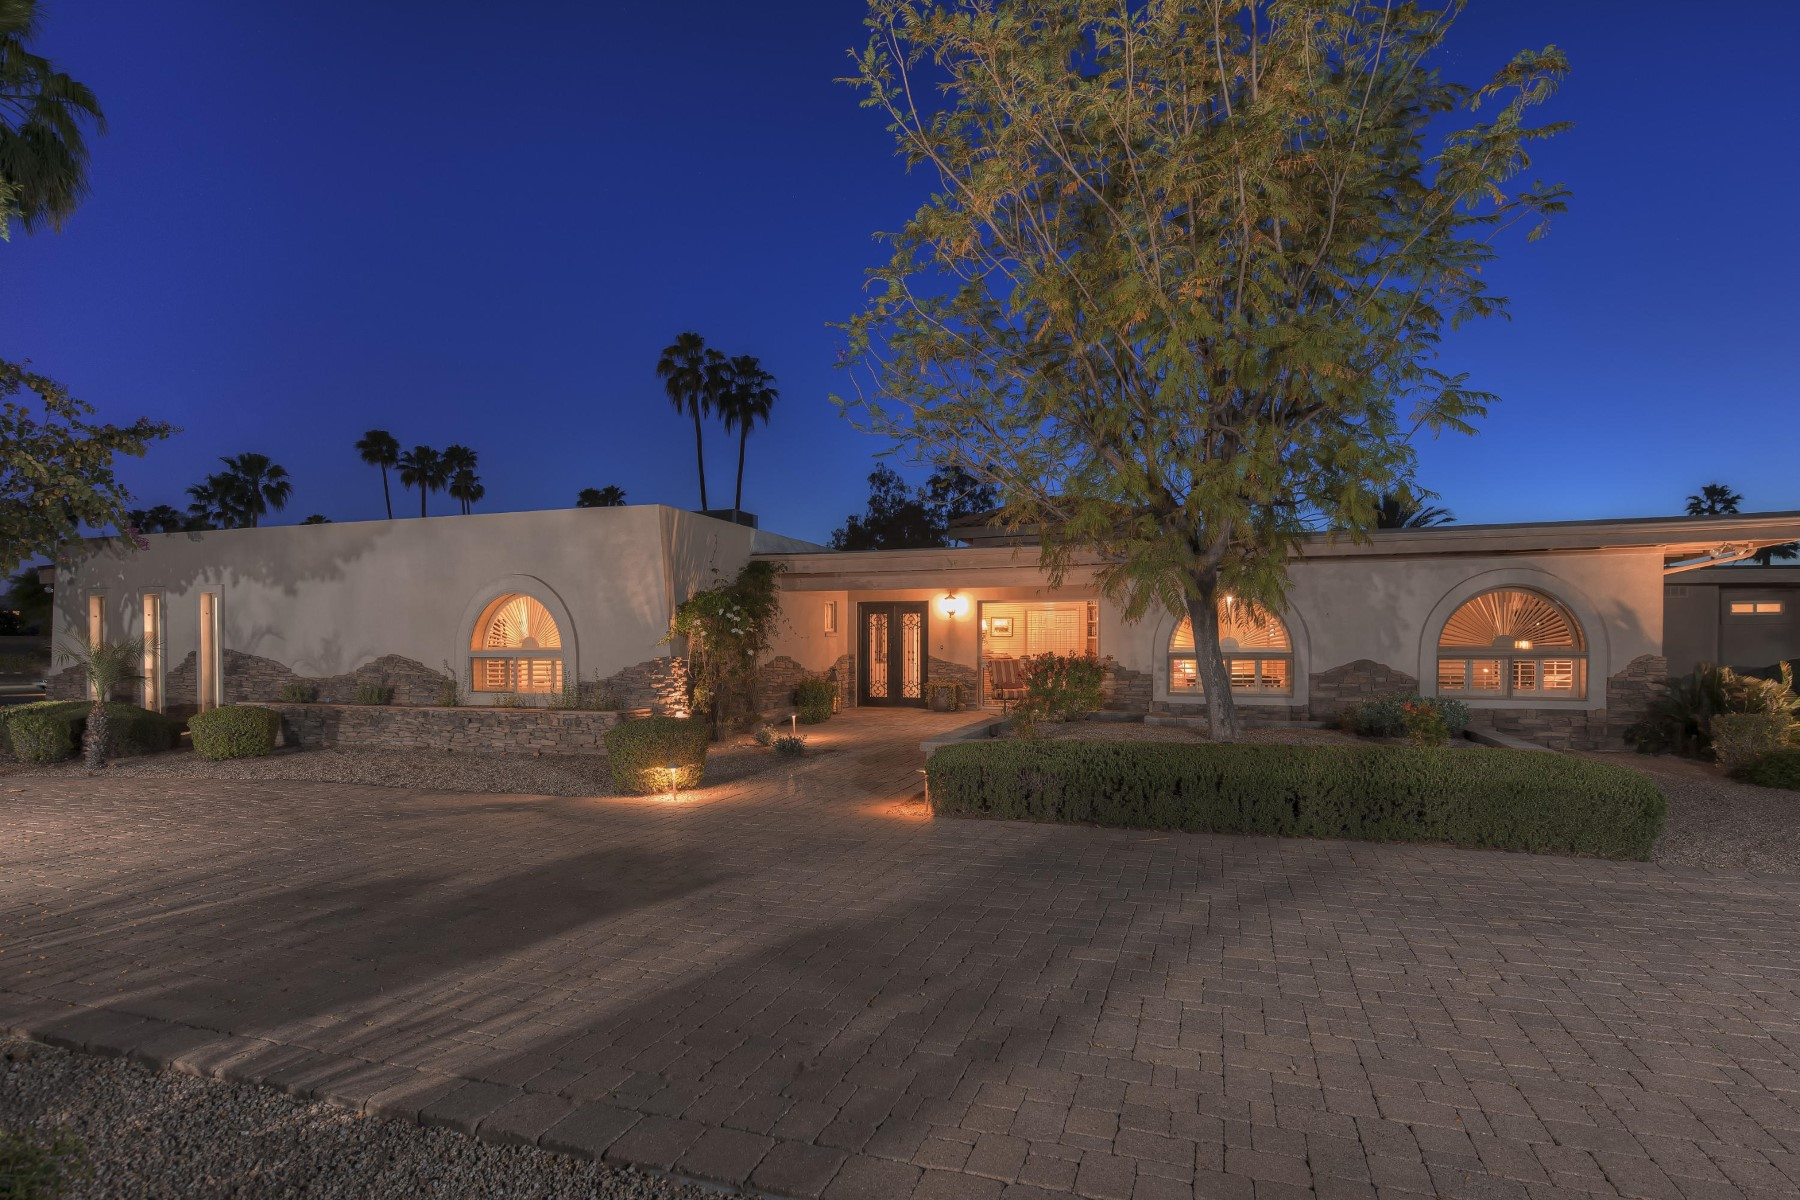 Single Family Home for Sale at Charming home on 1.06 acre lot in sought after Paradise Valley Farms 8002 N 74th Pl Scottsdale, Arizona, 85258 United States